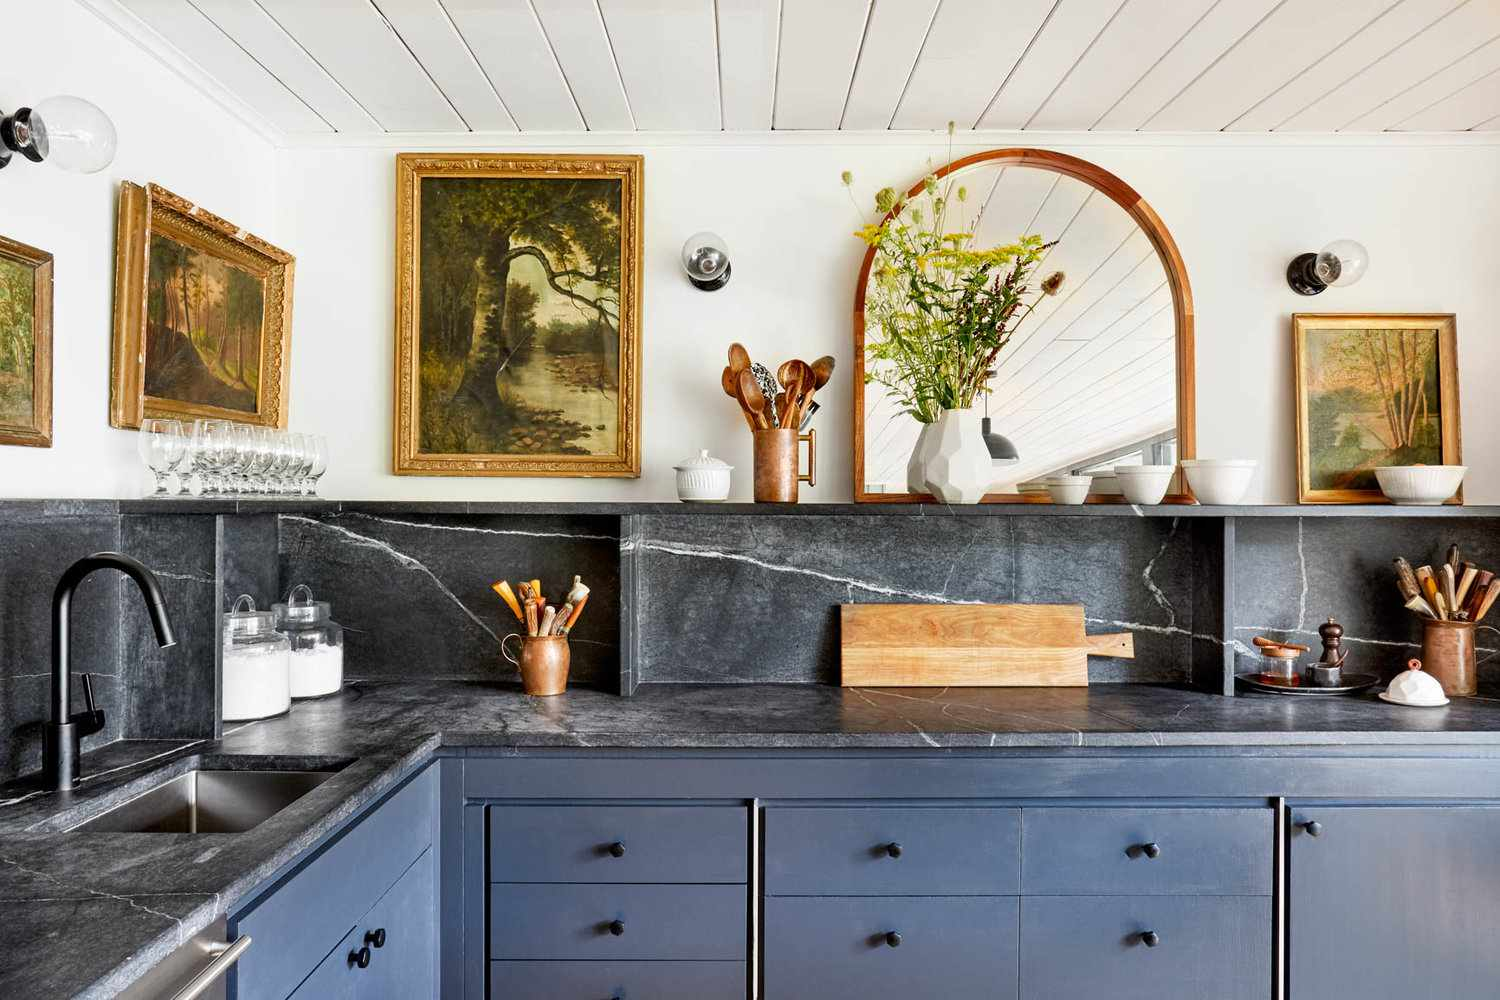 best kitchen ideas - blue and gray kitchen with antique paintings